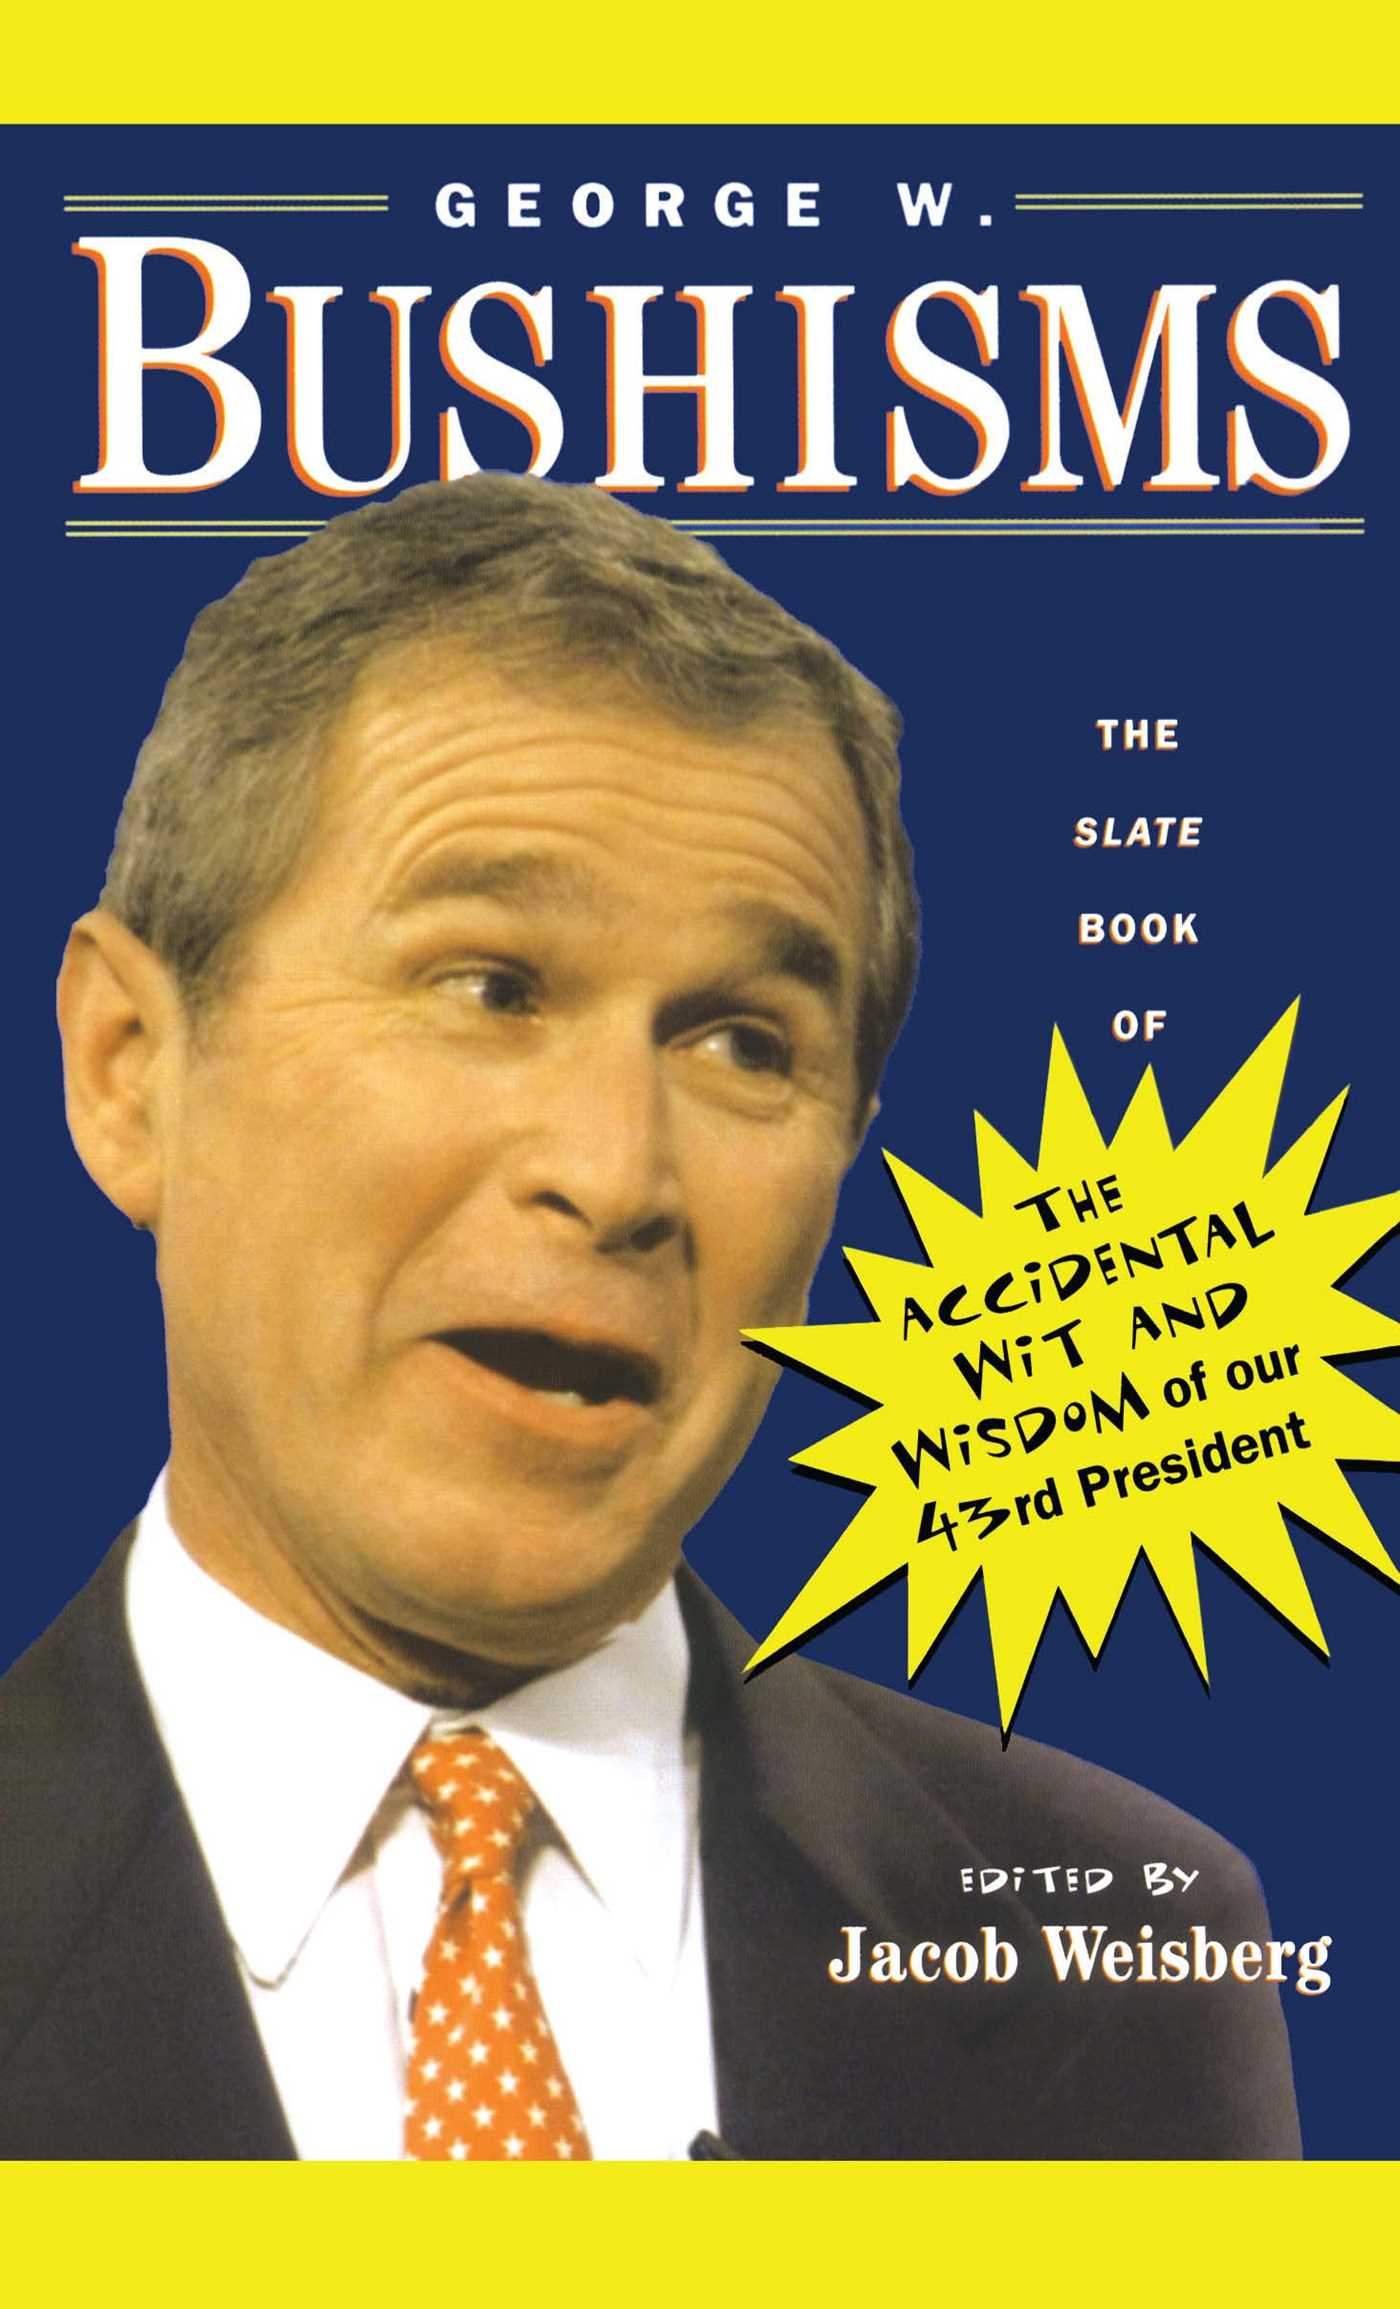 George-w-bushisms-9780743222228_hr